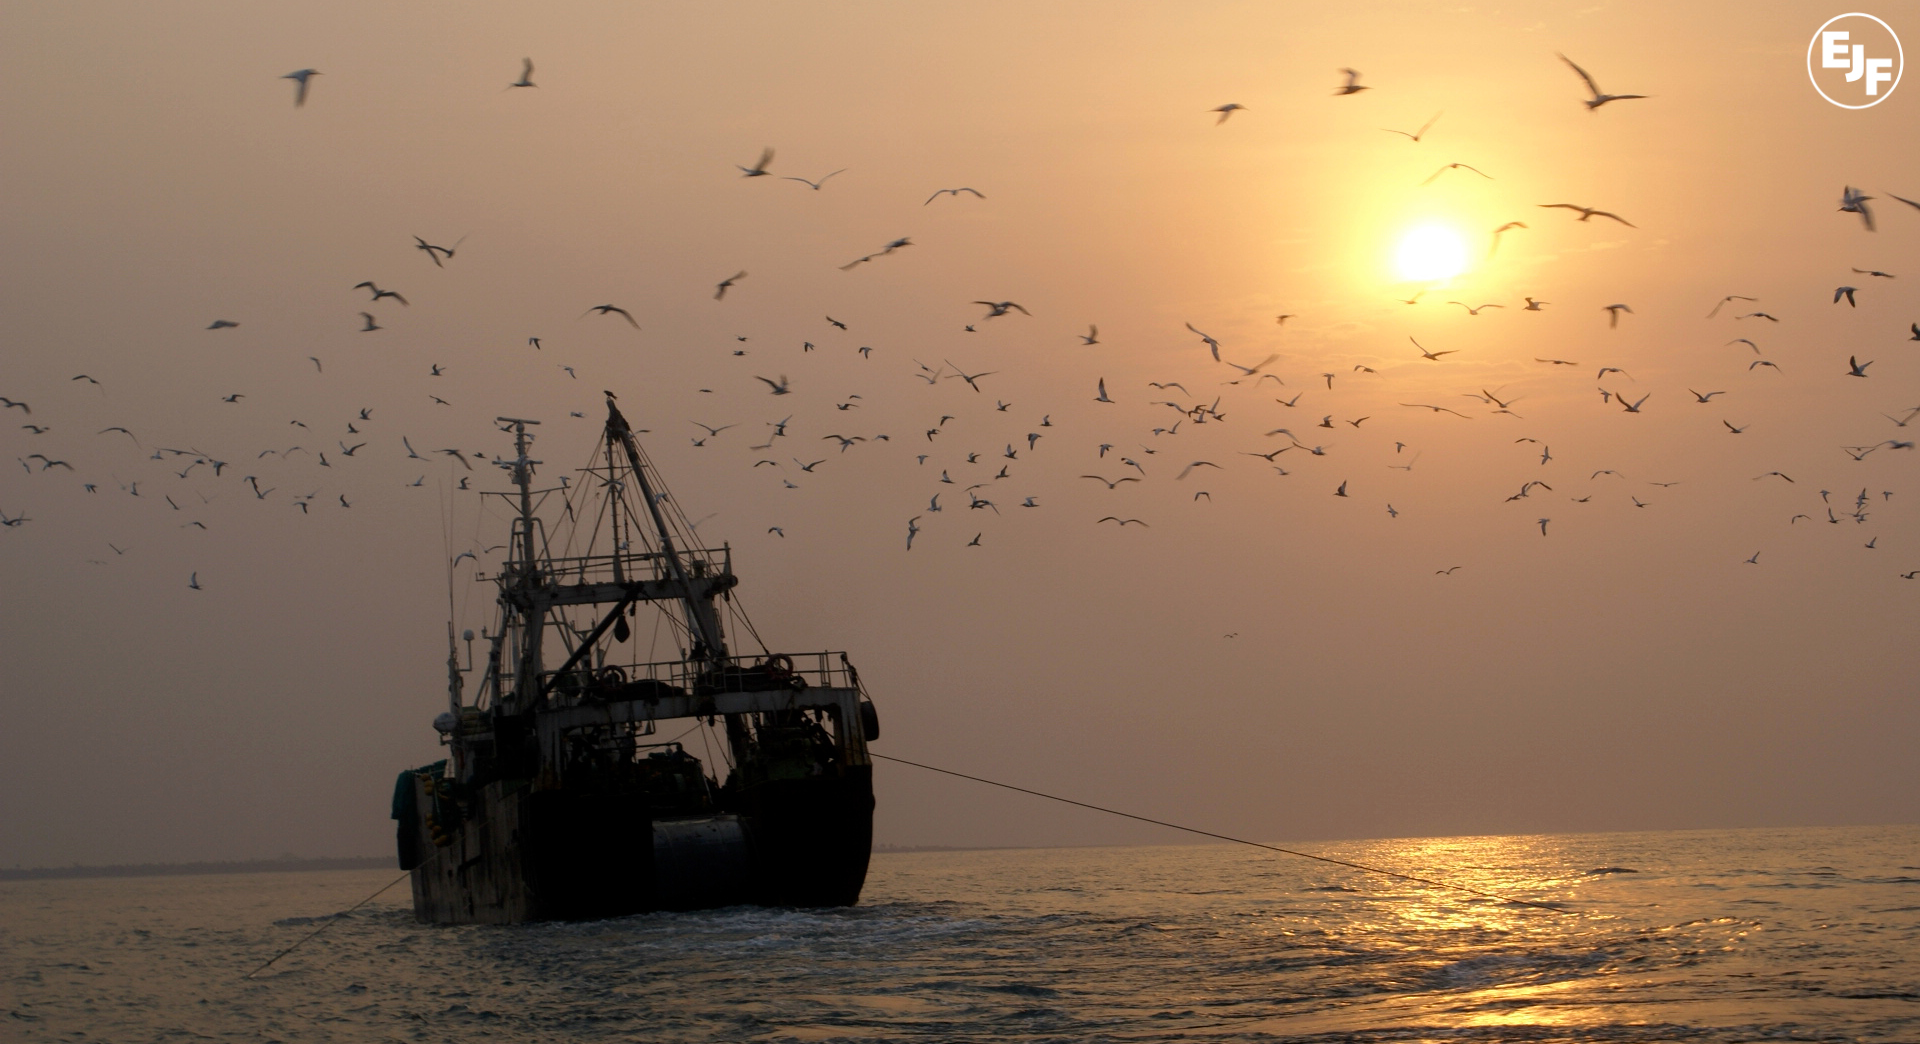 EU fisheries advisory body calls for mandatory IMO numbers for vessels catching seafood for the EU market